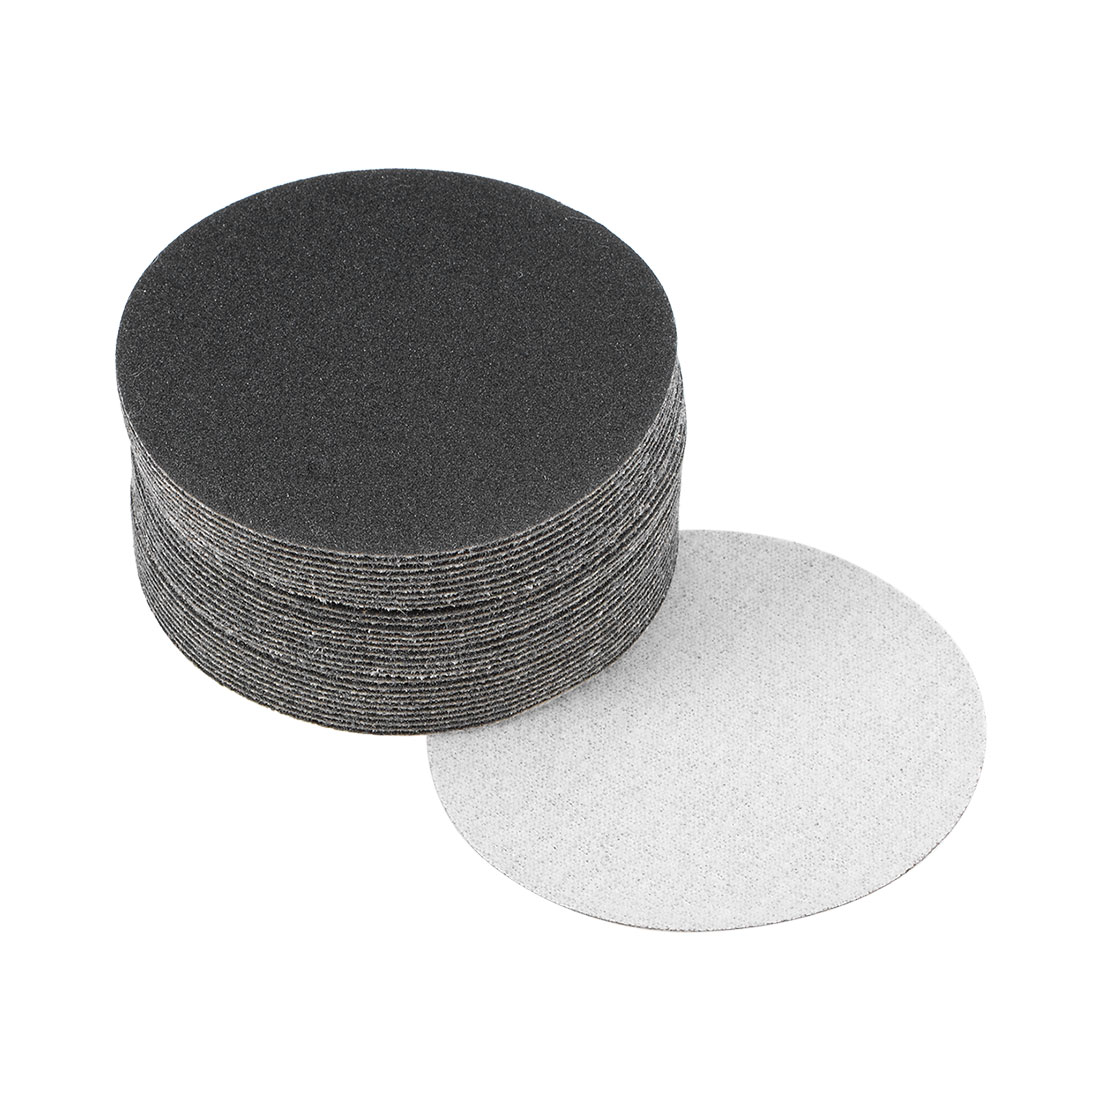 3 inch Wet Dry Discs 150 Grit Hook and Loop Sanding Disc Silicon Carbide 30pcs